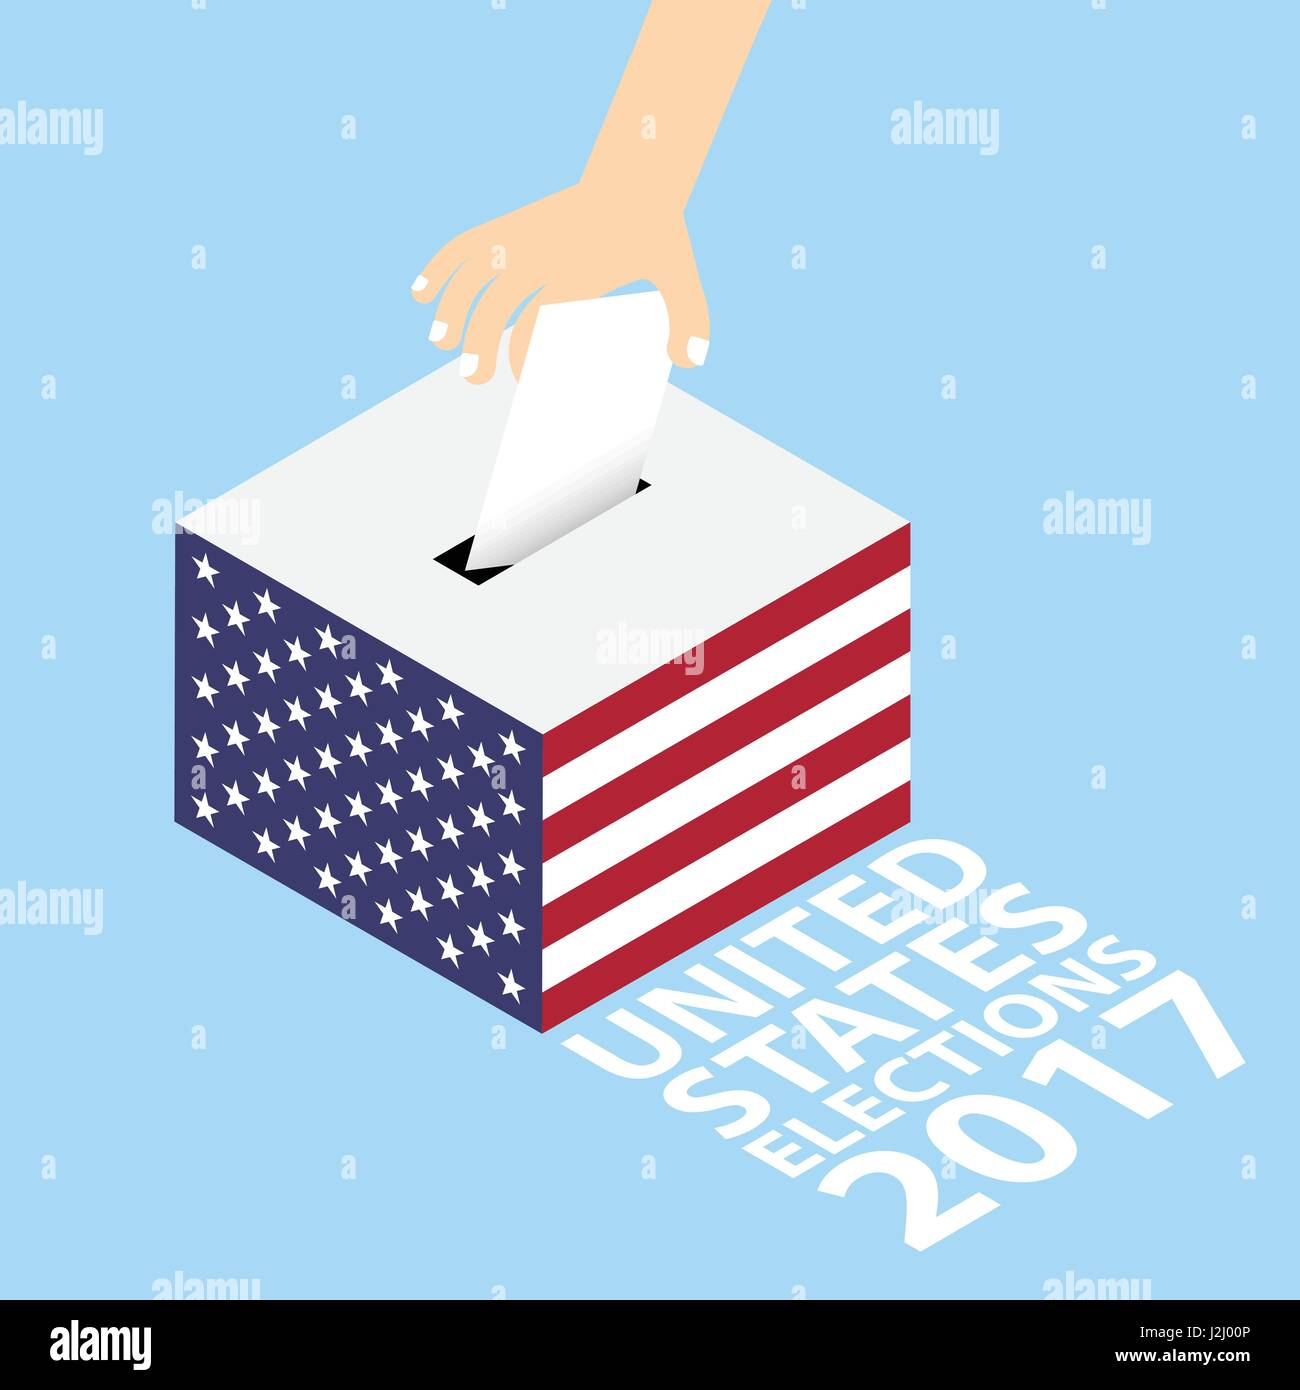 United States (US) Elections 2017 Vector Illustration Flat Style - Hand Putting Voting Paper in the Ballot Box Stock Vector